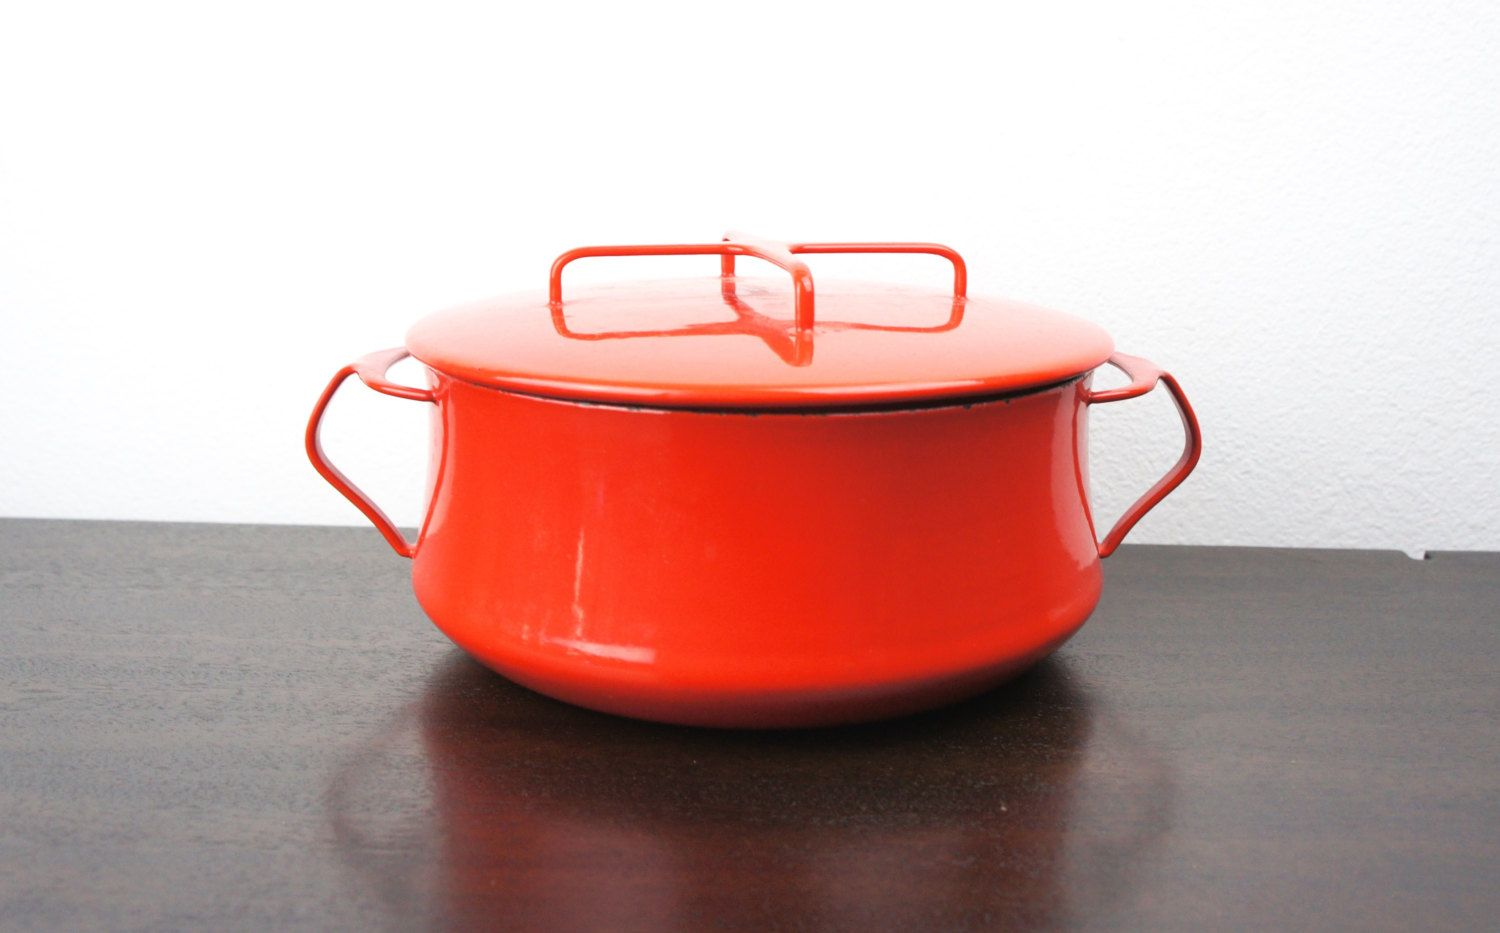 Vintage Dansk Kobenstyle 3 75 Qt 8 5 In Red 8 5 Dutch Oven Enameled Steel Medium Mid Century Enamelware Enamelware Enameled Steel Jens Quistgaard